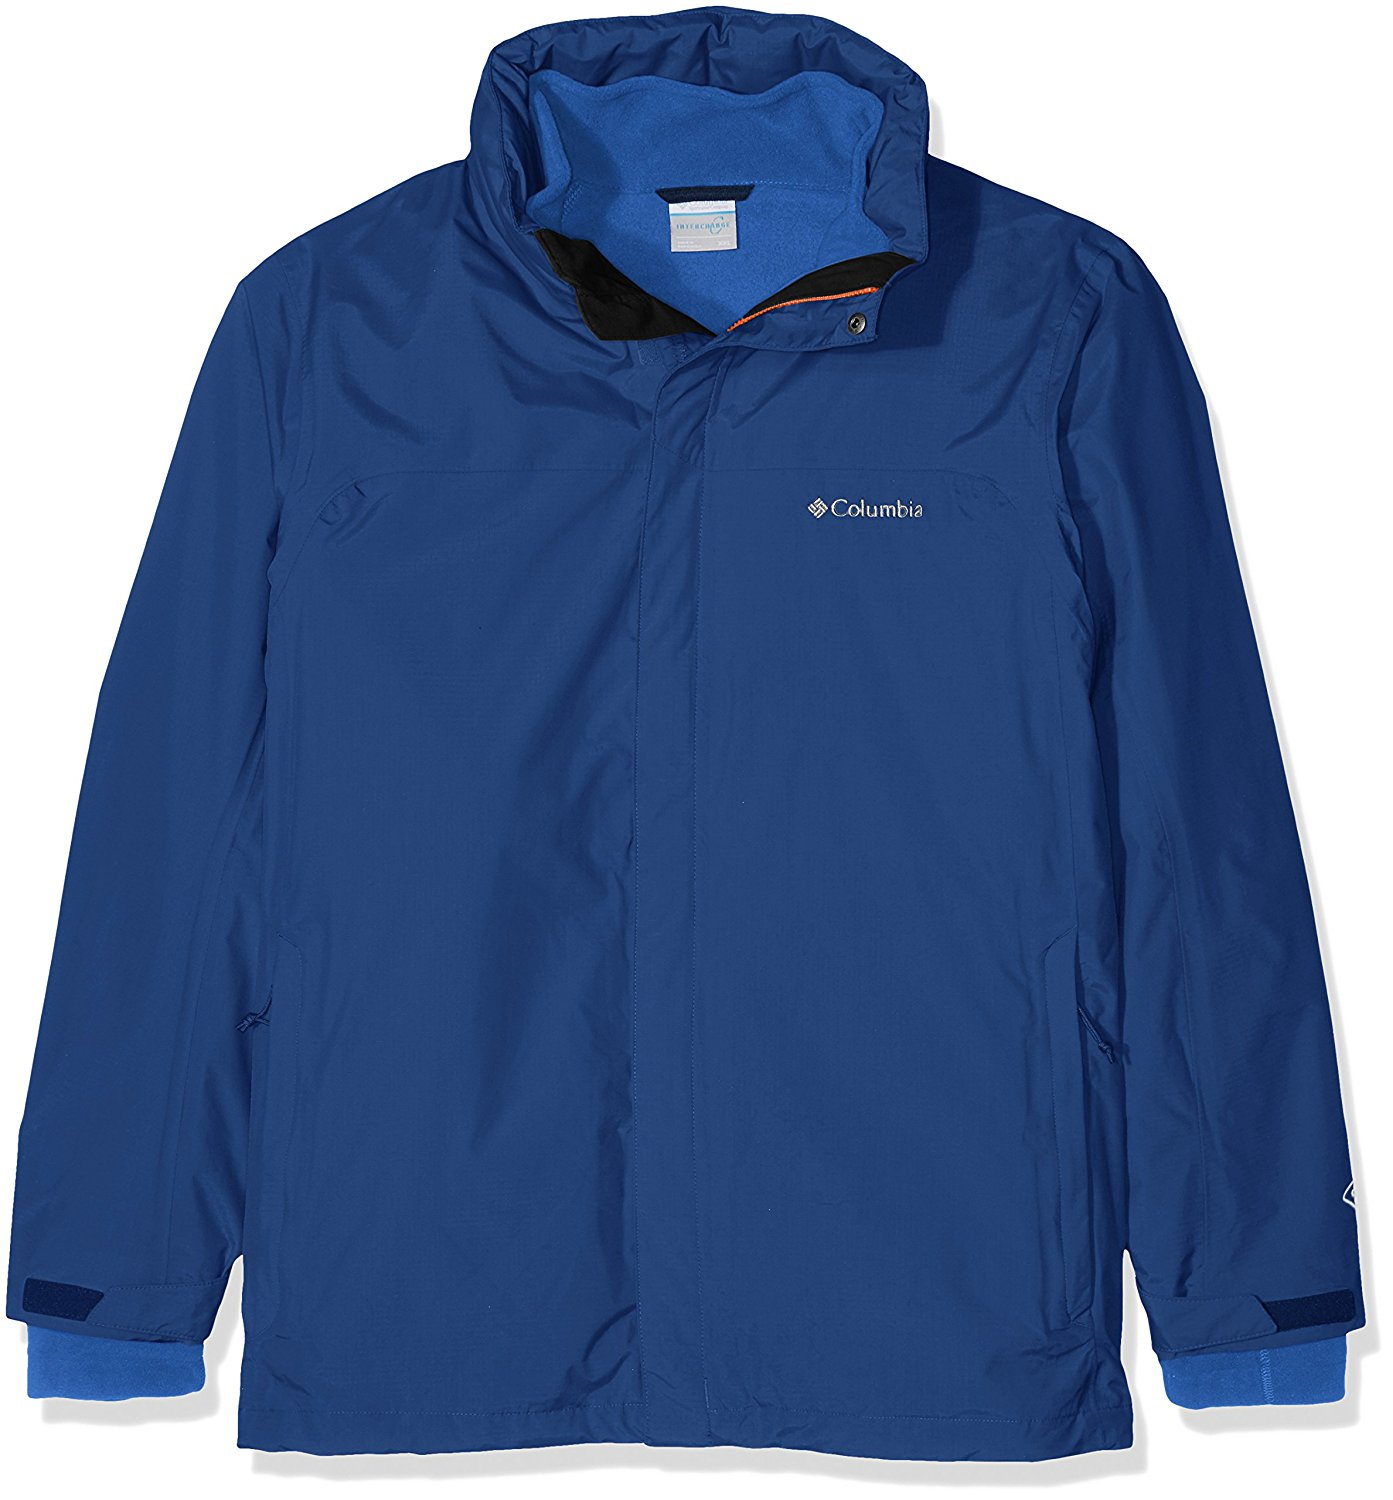 Columbia Men's Mission Air Interchange Jacket